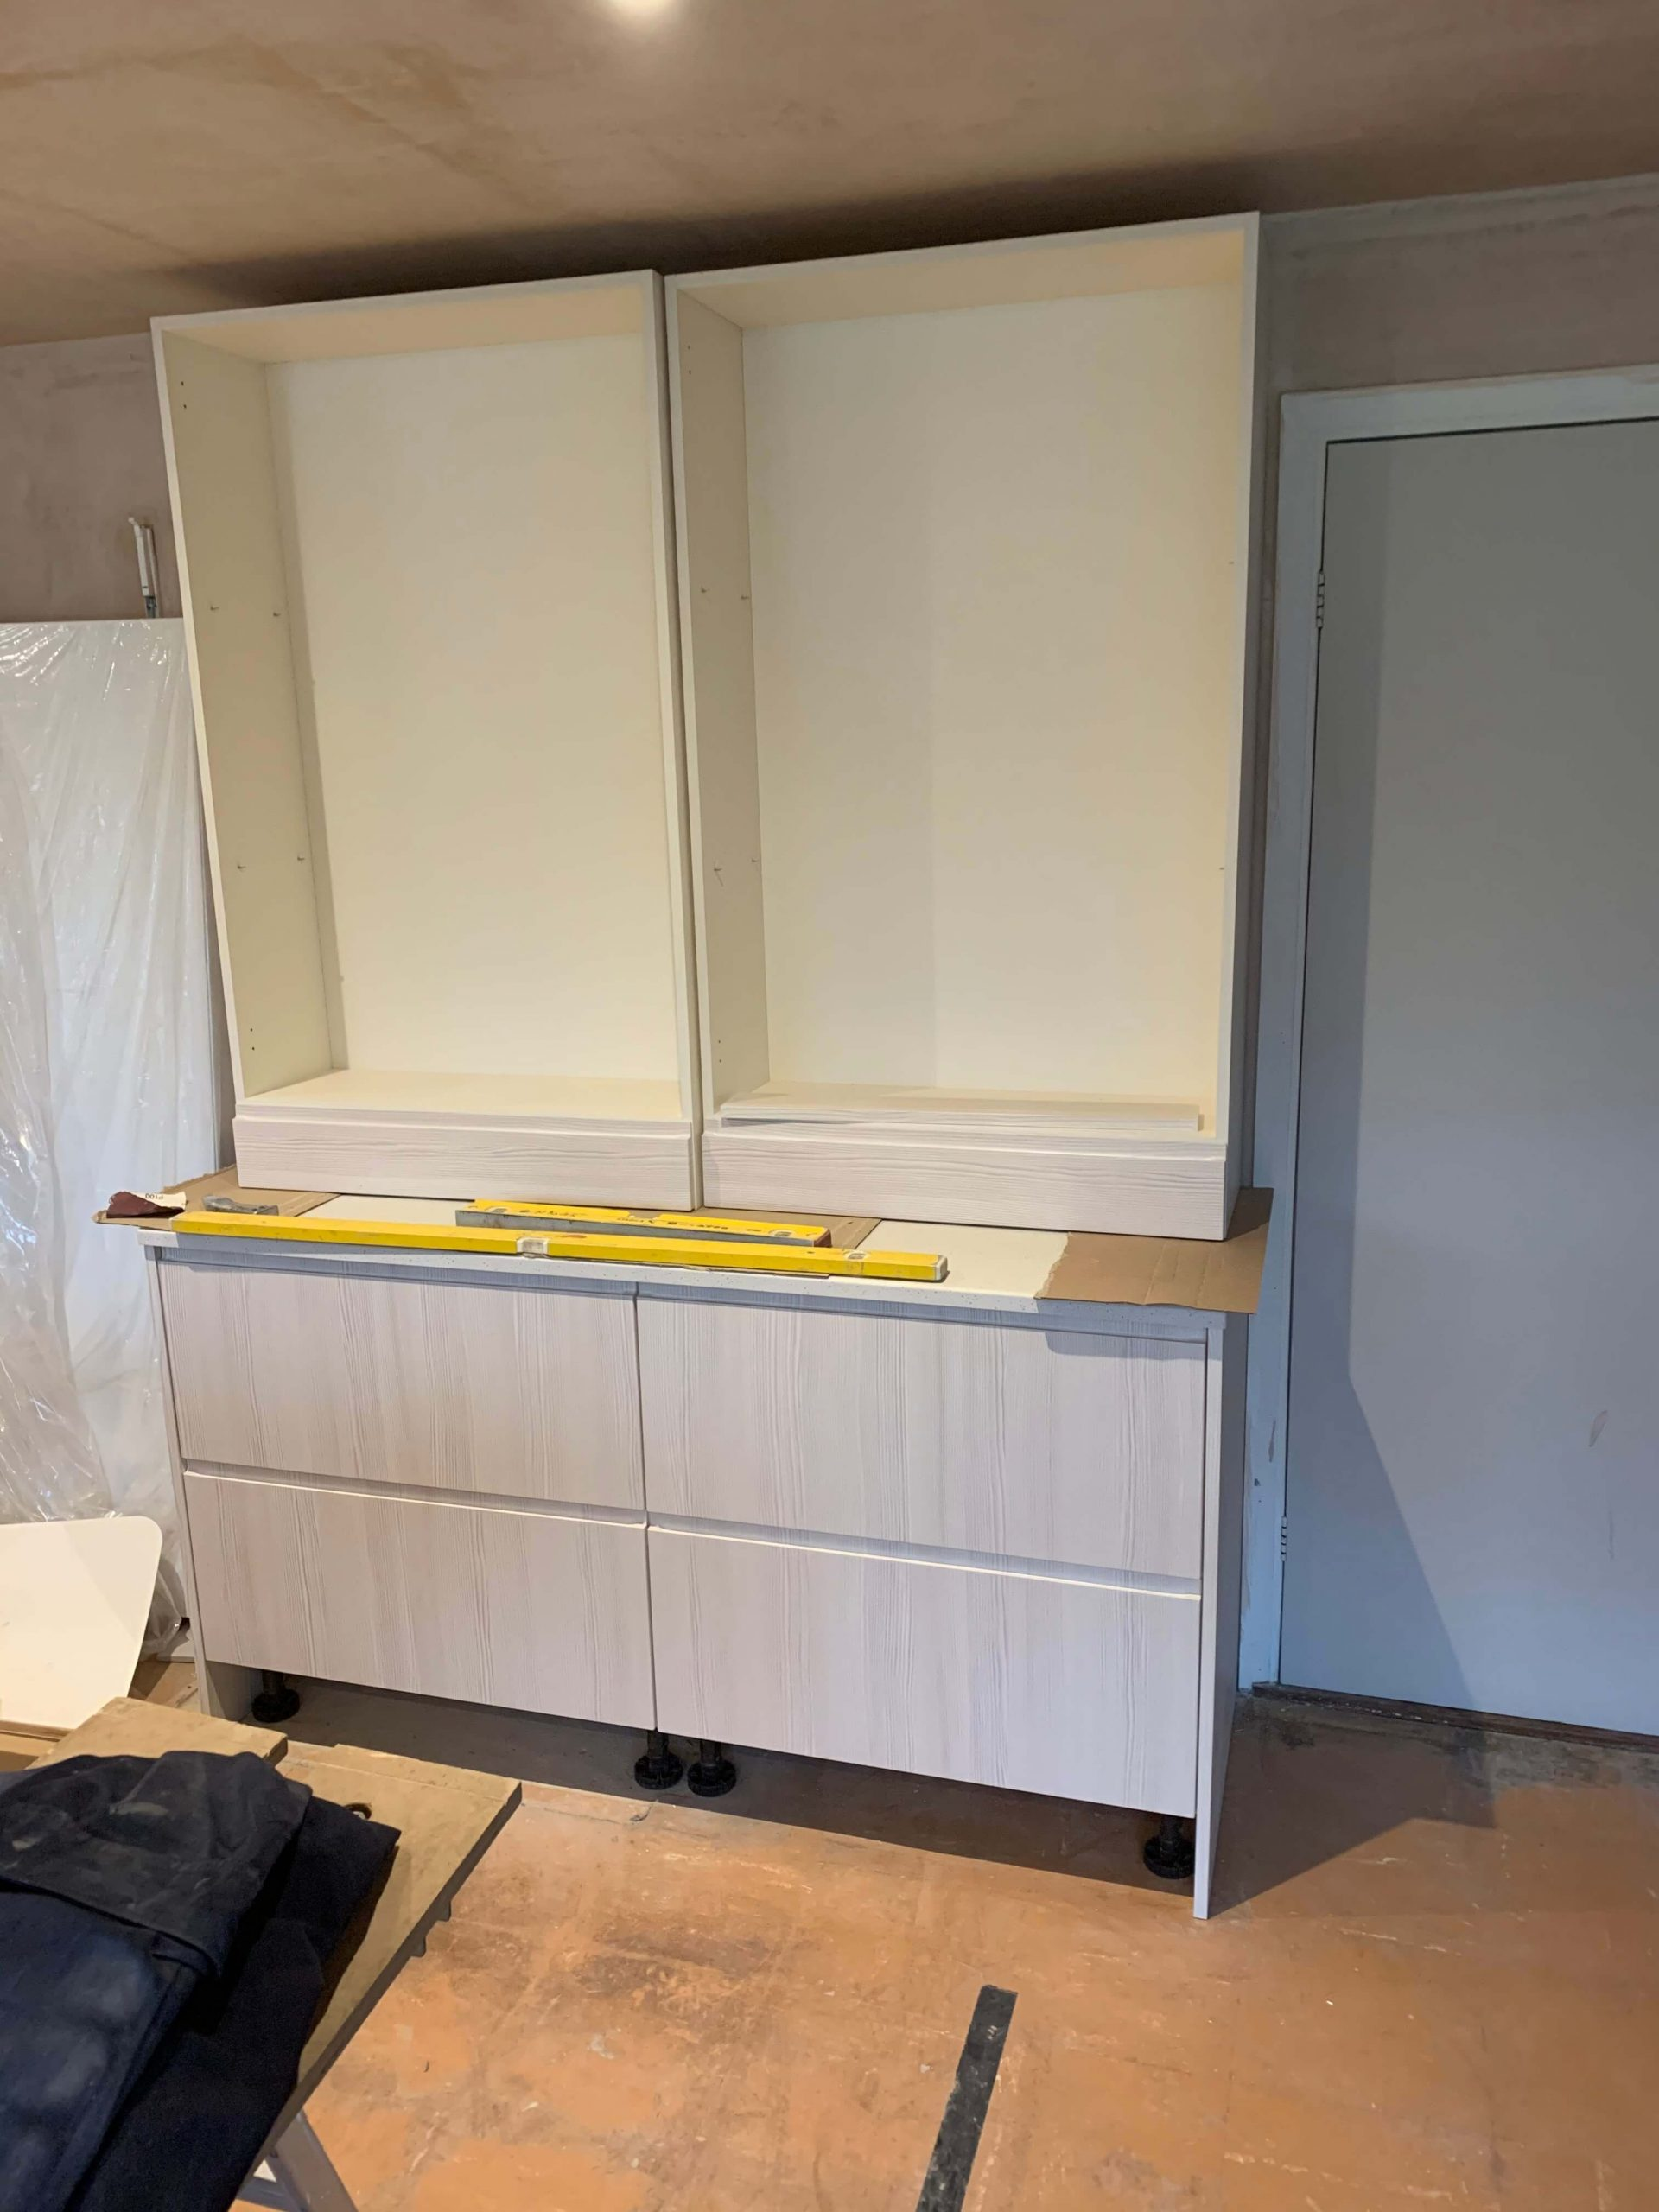 Dresser cupboards being fitted